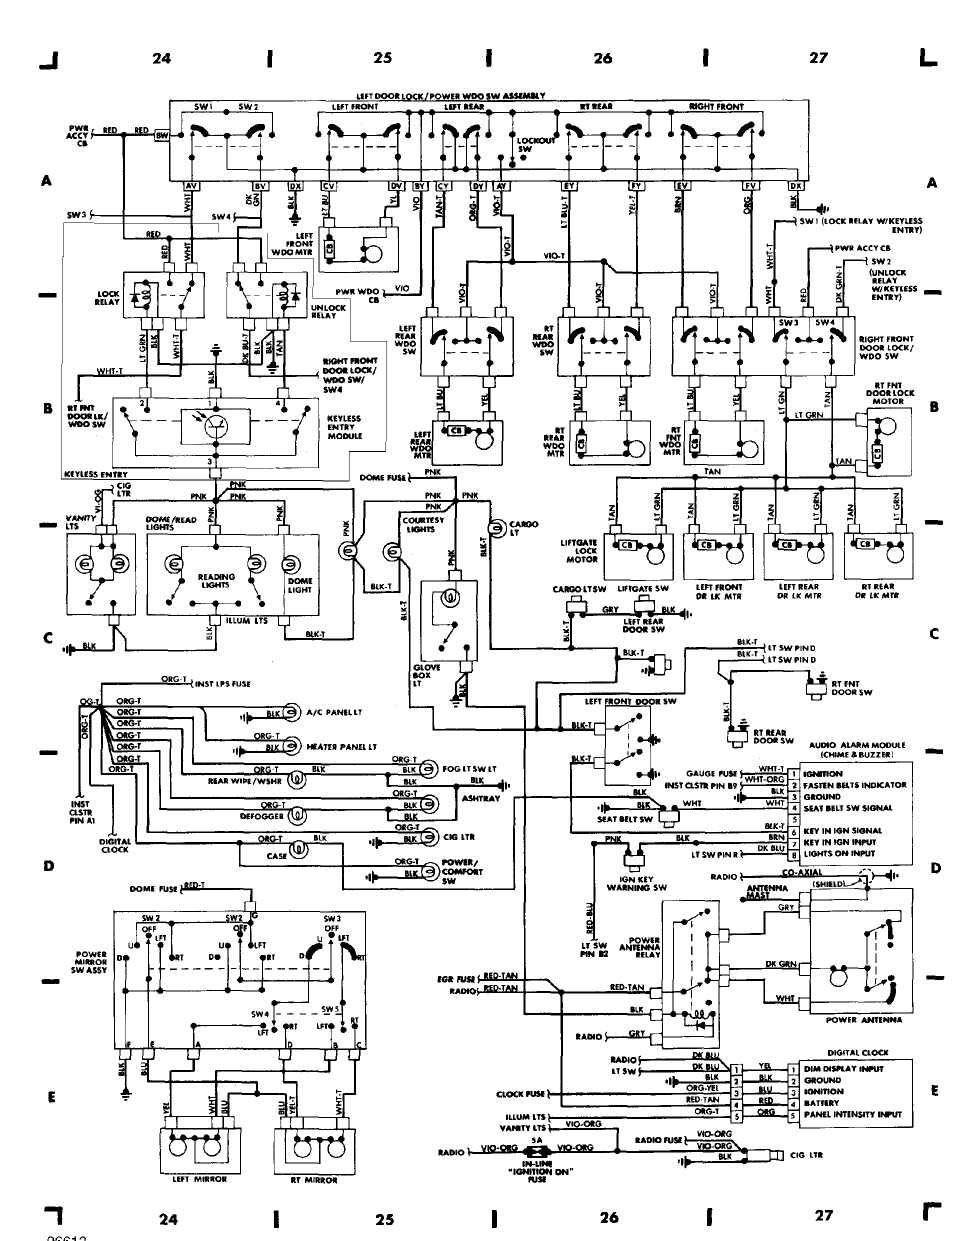 wiring_diagrams_html_61f5e0ad wiring diagrams 1984 1991 jeep cherokee (xj) jeep 1994 Jeep Grand Cherokee Fuse Box Diagram at webbmarketing.co